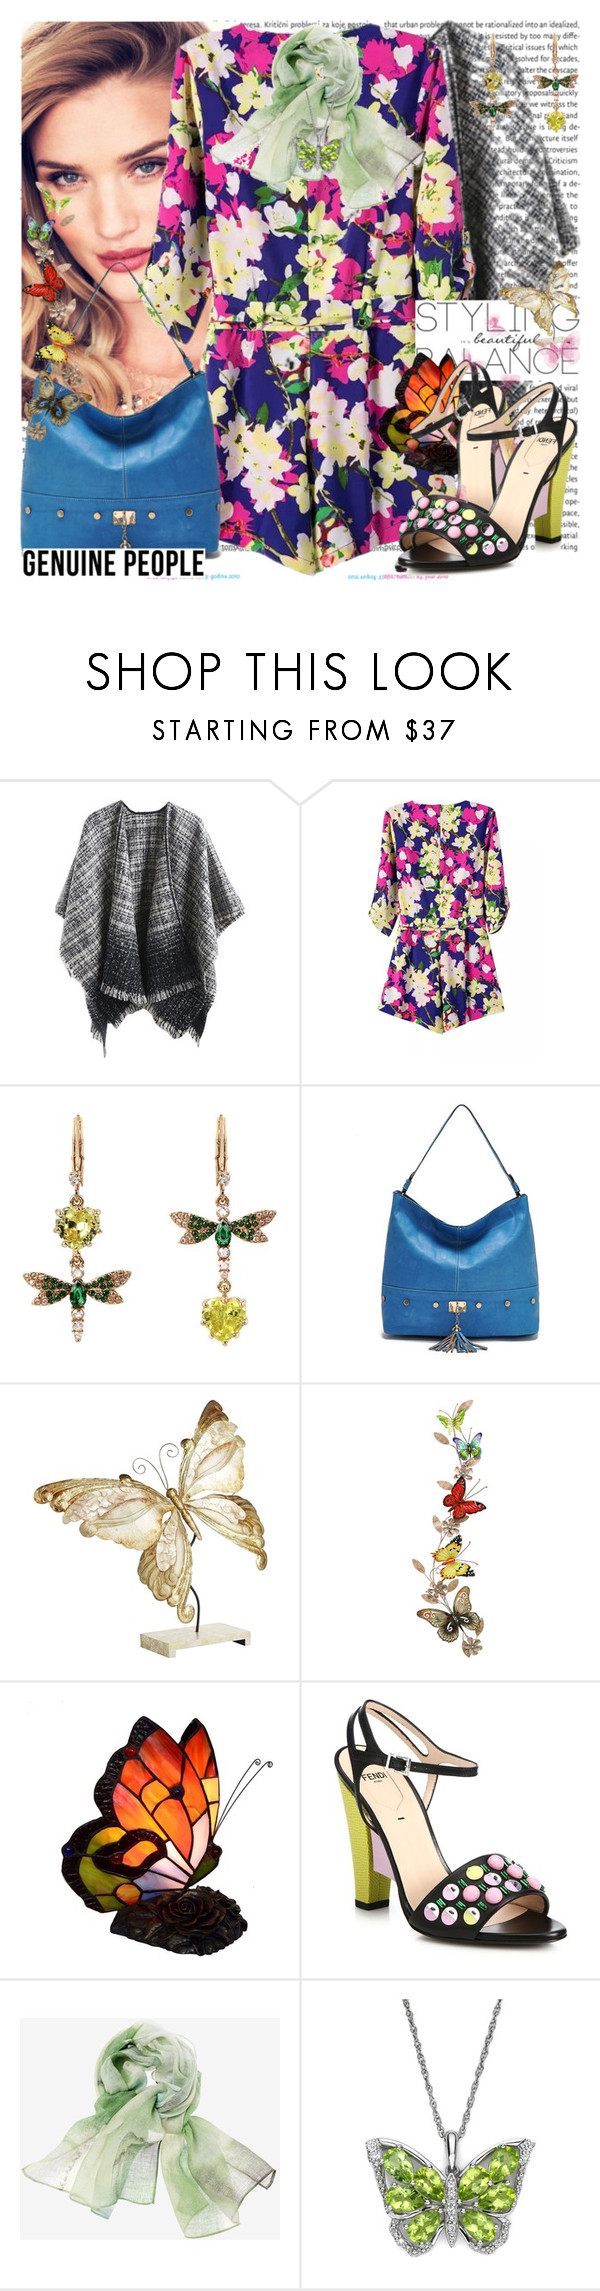 """Like a Butterfly"" by msfashionchick ❤ liked on Polyvore featuring Oris, Betsey Johnson, Pier 1 Imports, Benzara, Fendi and Chico's"